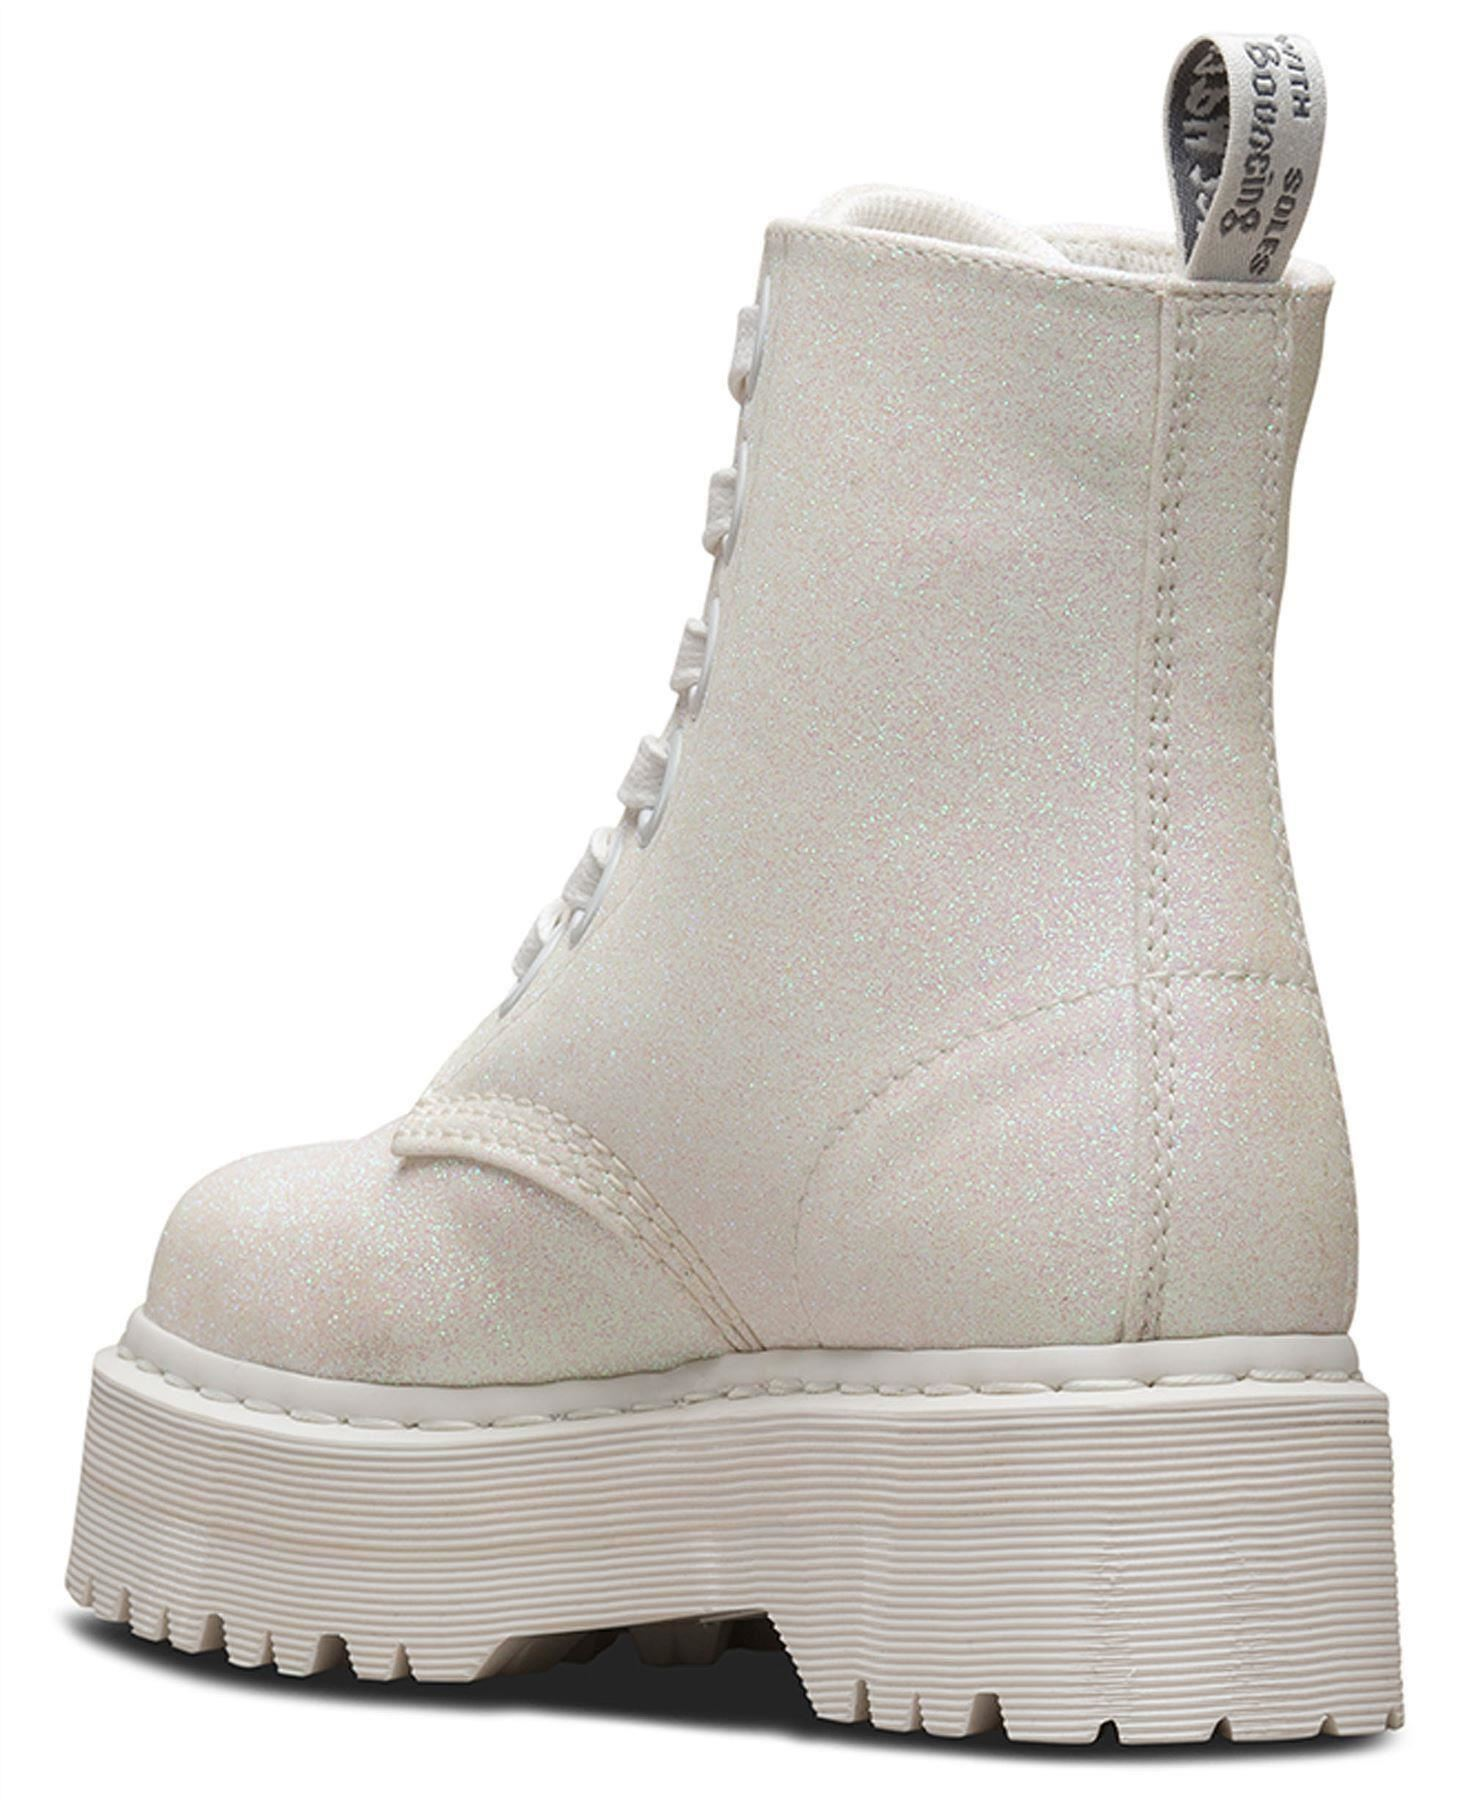 13cd626c475 Details about Dr Martens Ladies Molly Iridescent White Glitter PU Ankle  Platform Boots